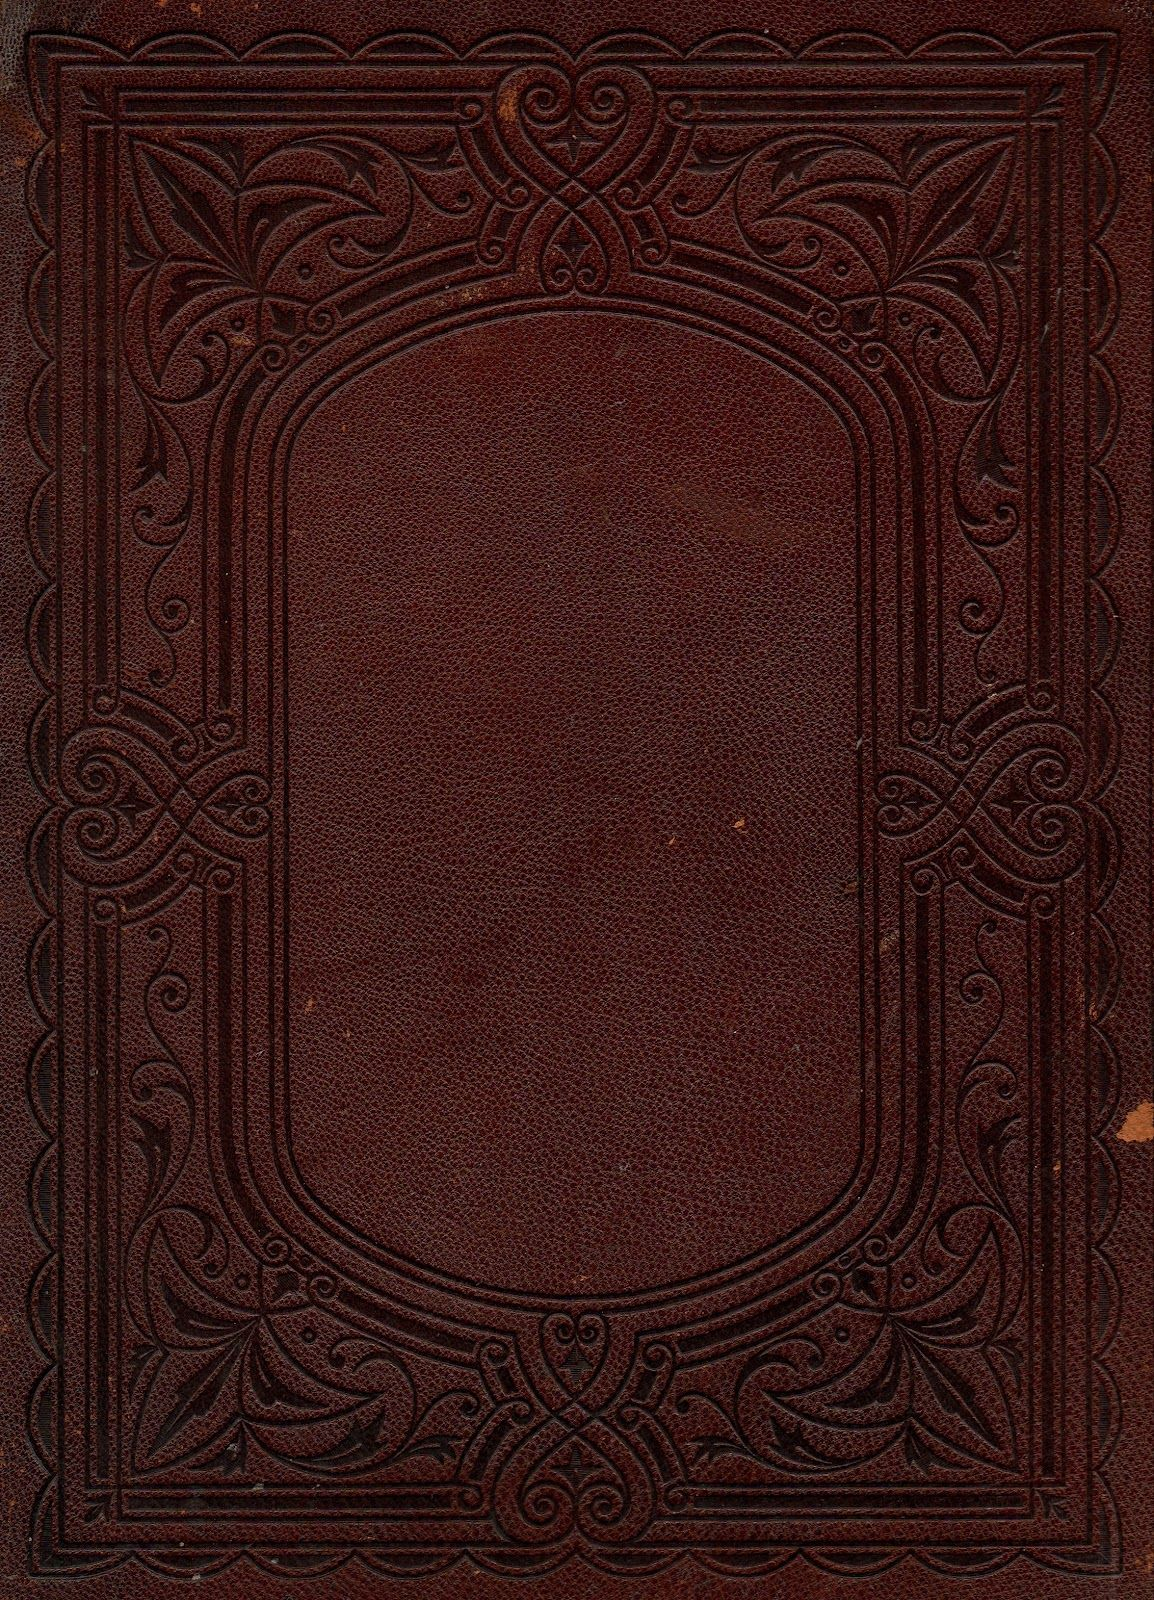 Leaping Frog Designs Antique Book Cover Frame Free Png Image Antique Books Book Cover Vintage Book Cover